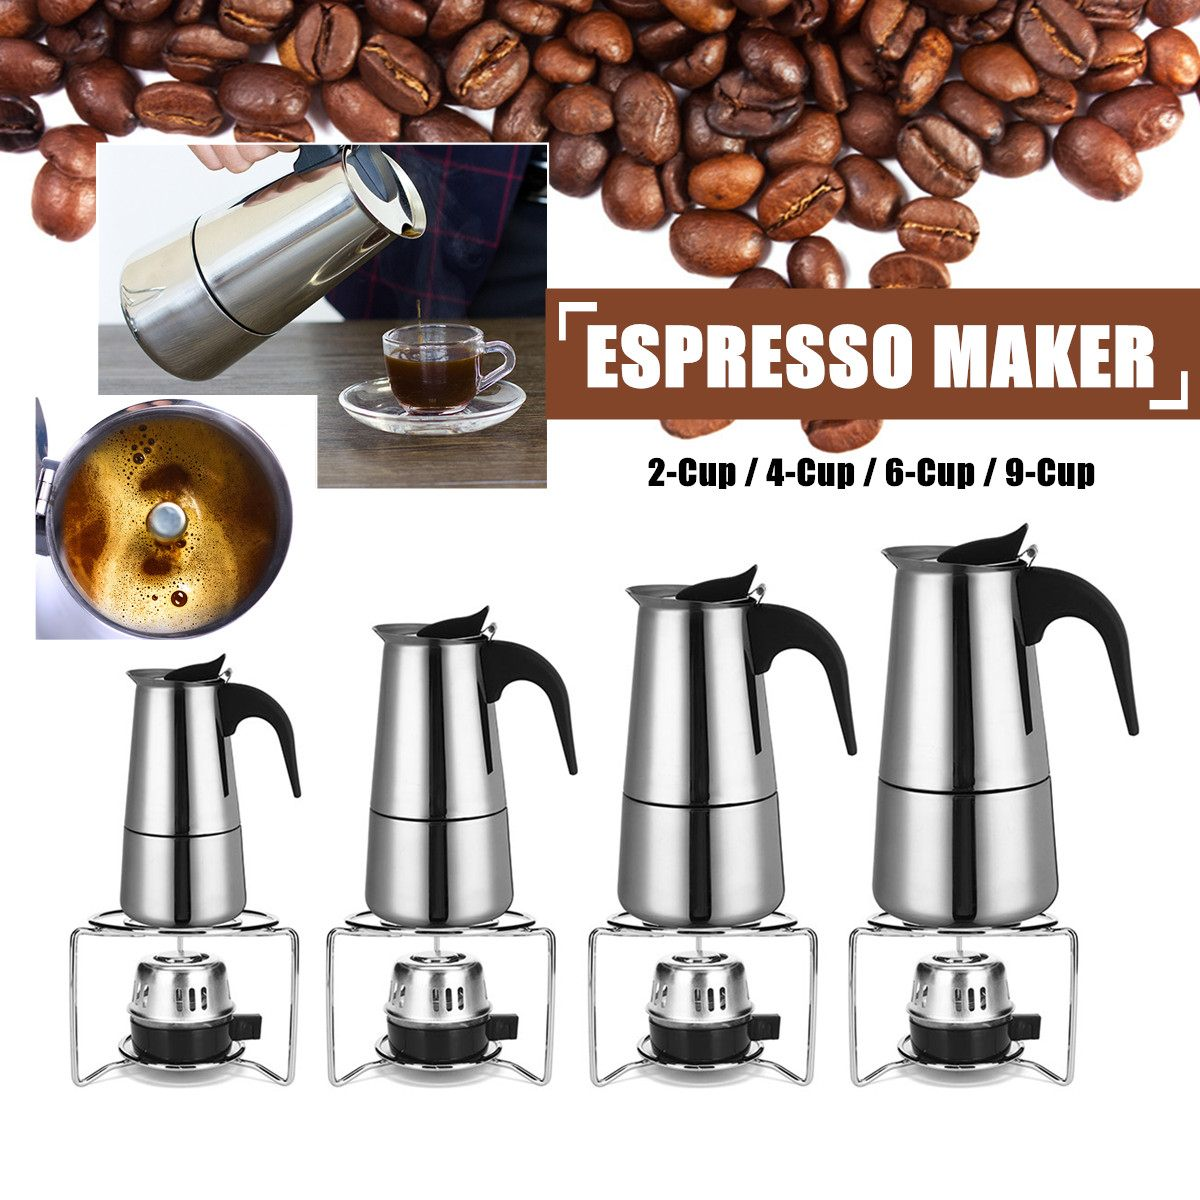 Brilliant Espresso Coffee Maker Pot Percolator Stainless Steel Quality In Alcohol Lamp 2/4/6/9 Cups Easy Clean Safety-release Valve Silicone Handle Excellent